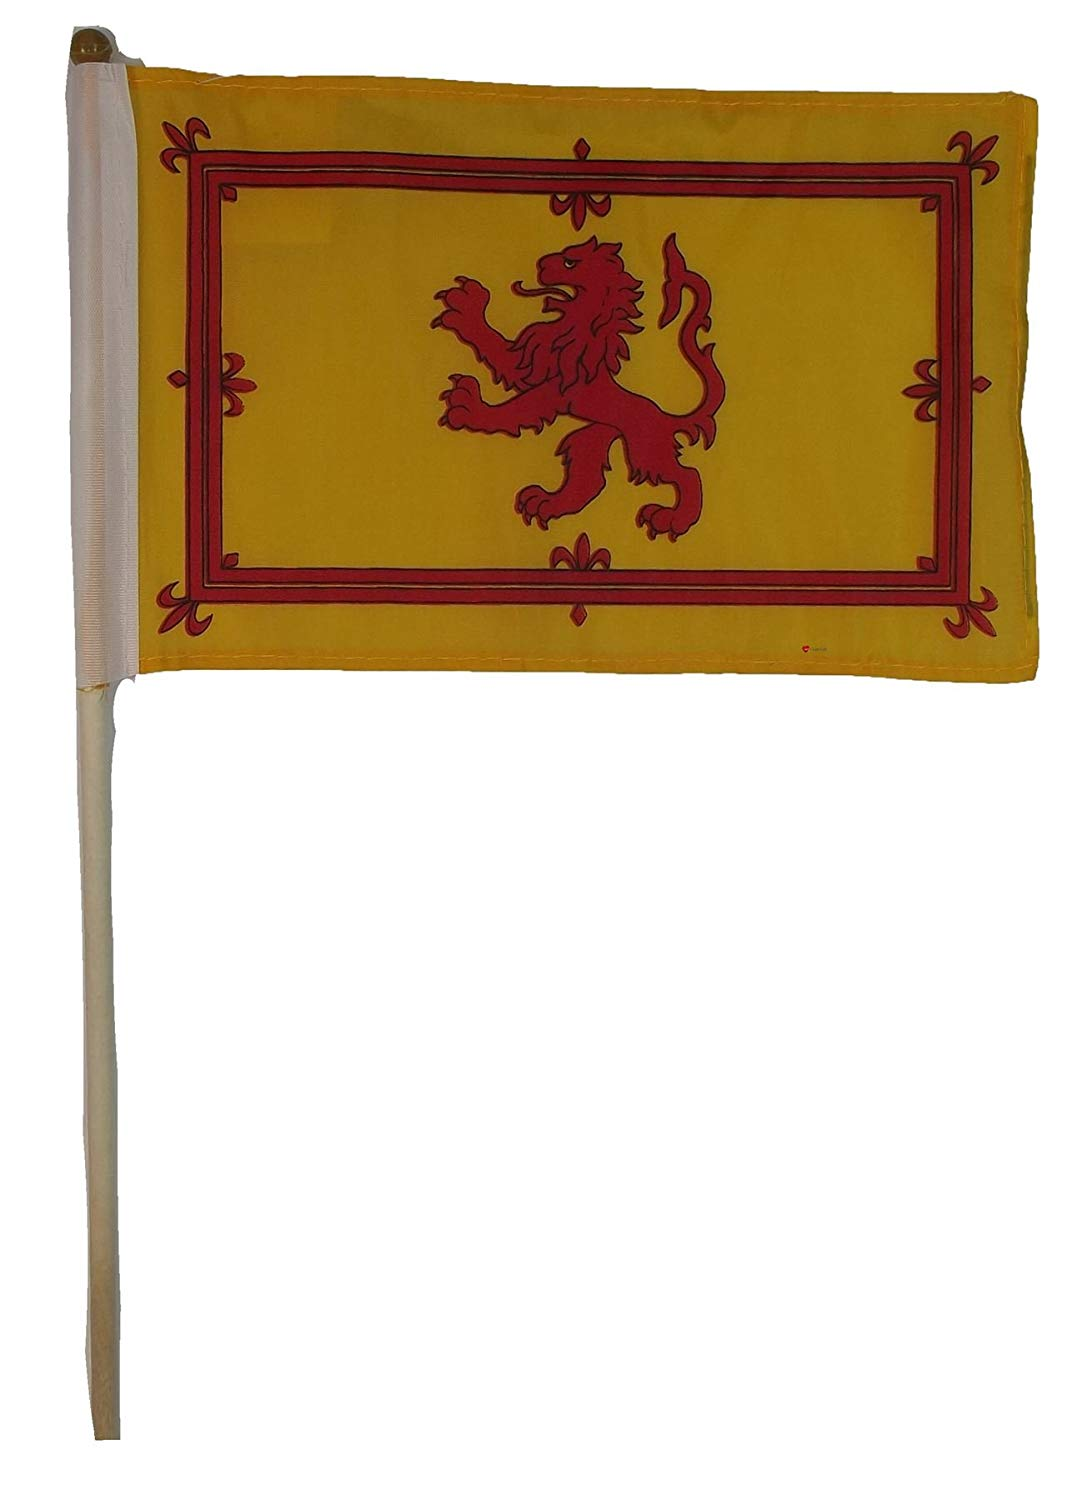 Small Hand Held Flag Lion Rampant 9? X 6? Lion Rampant Design Scottish Flag